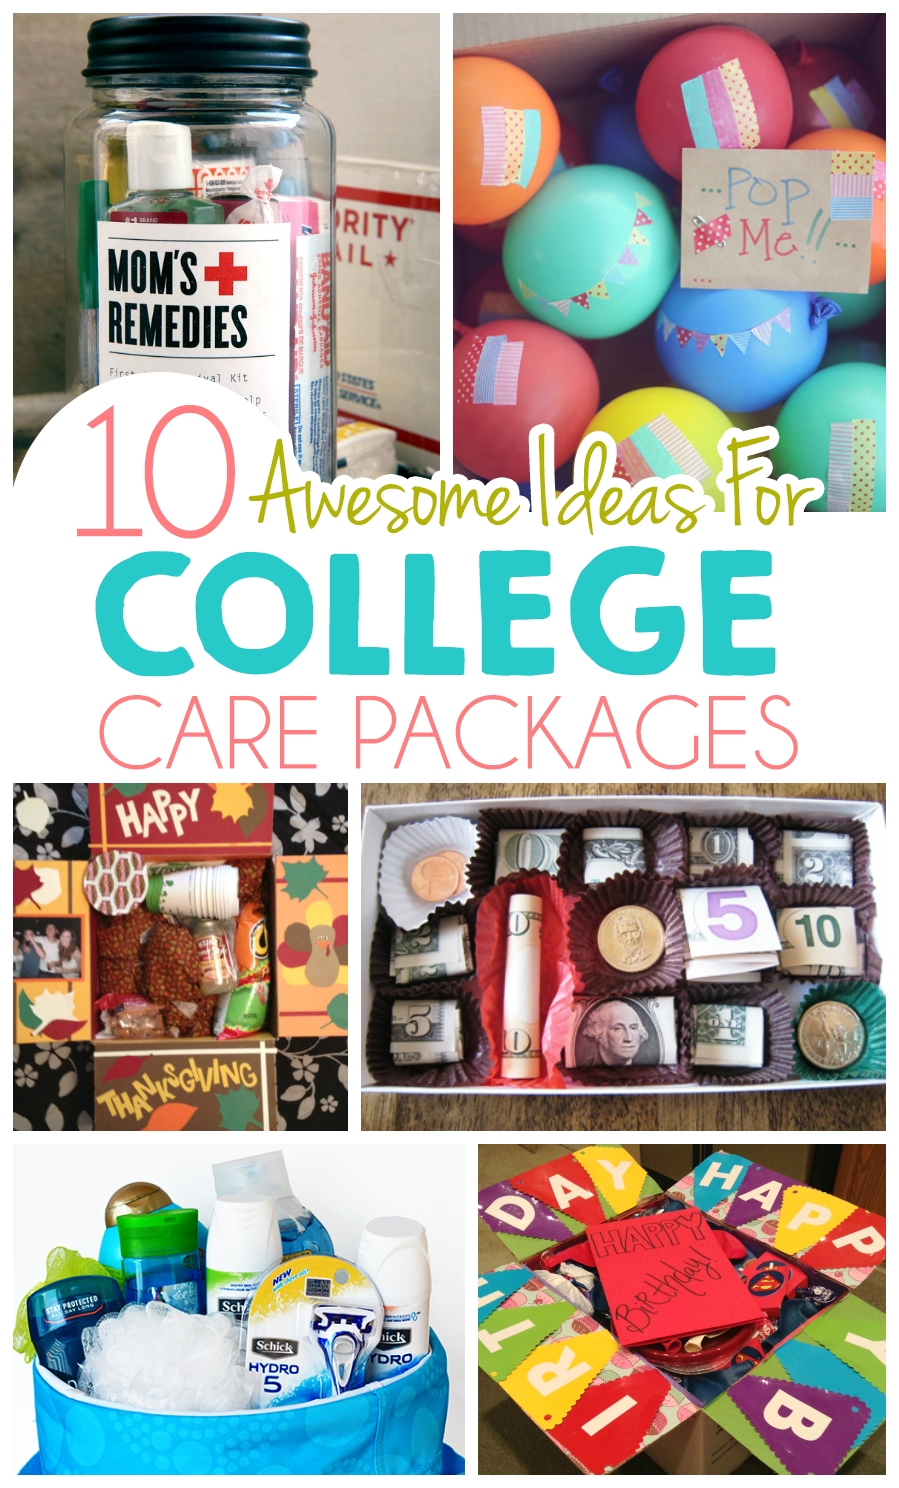 10 Most Recommended Care Package Ideas For College 10 ideas for college care packages college ads and gift 9 2021